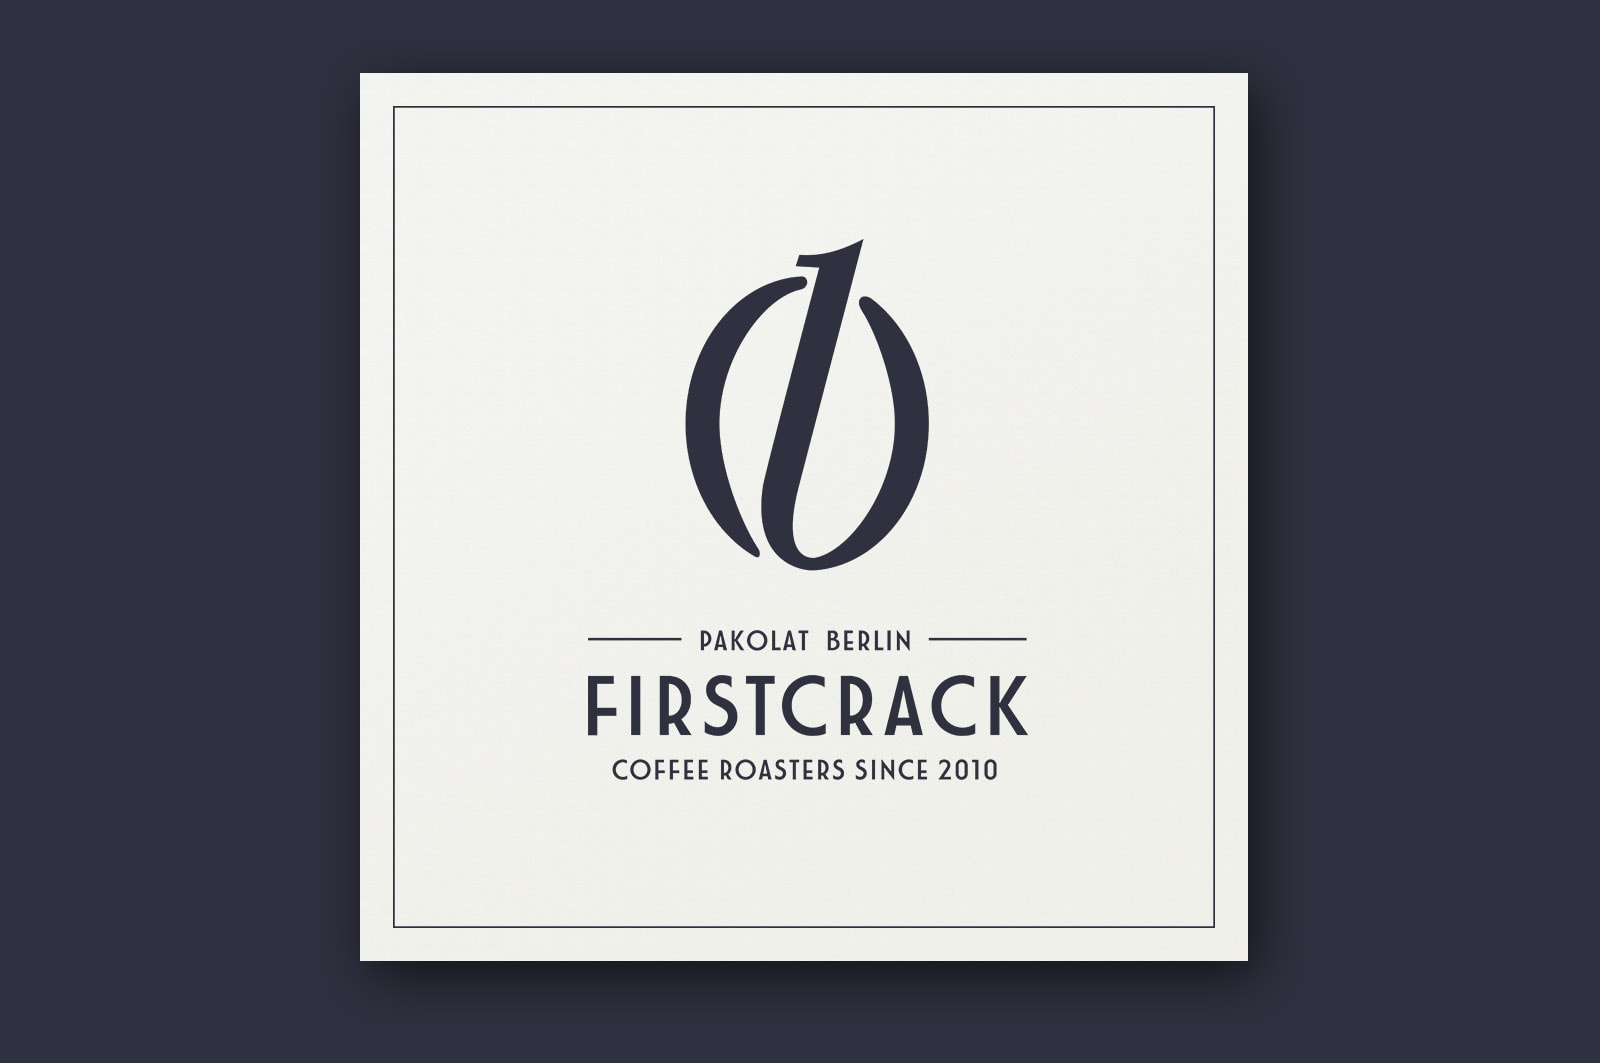 logodesign_firstcrack_mockup